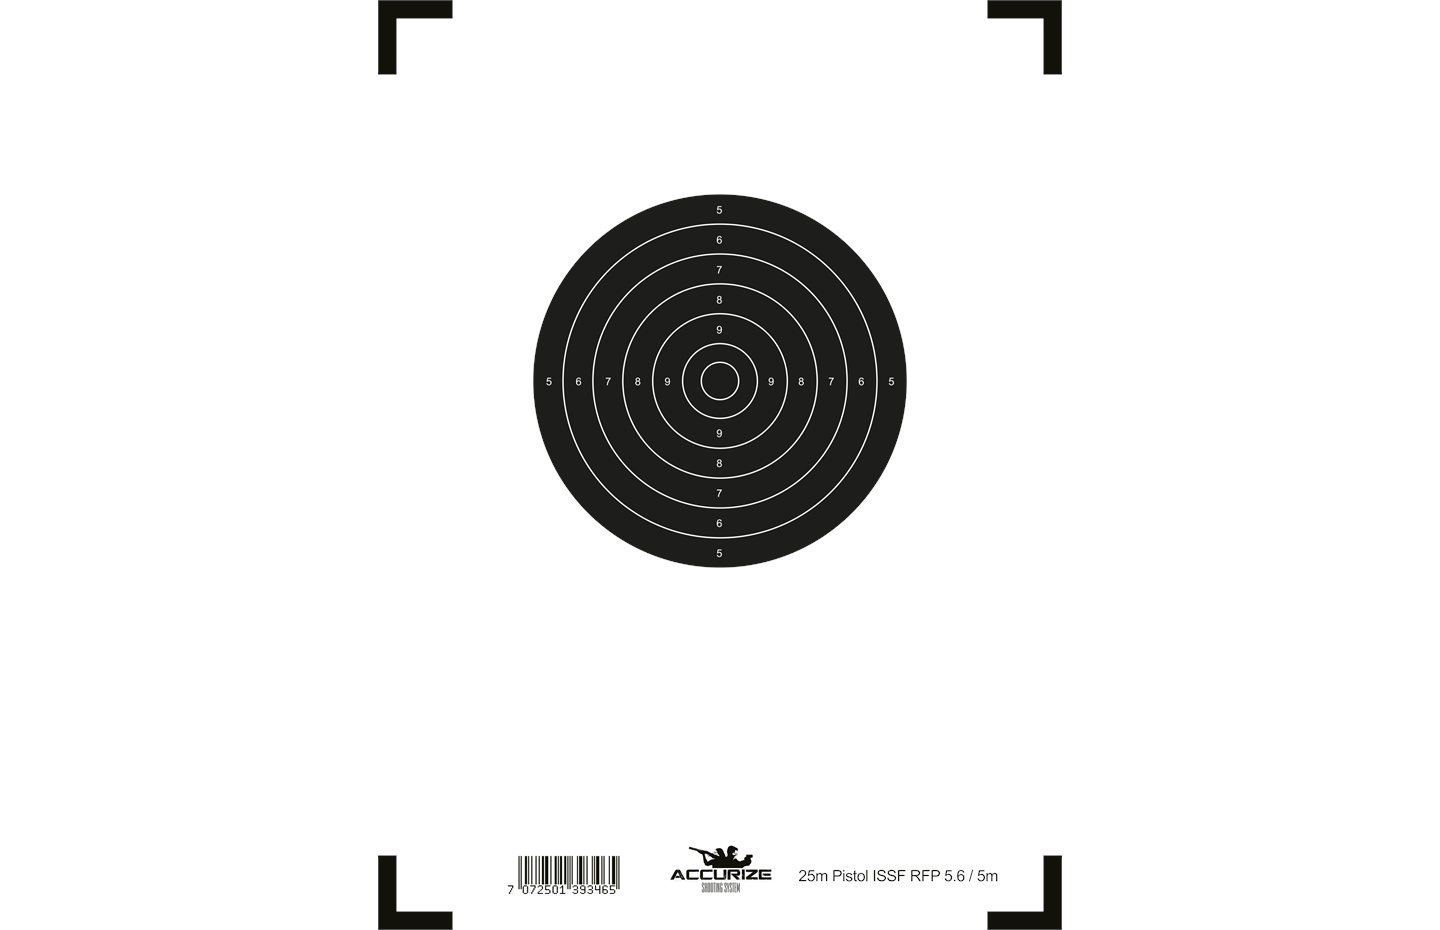 Accurize front target 25m Pistol ISSF RFP5.6/5m Image